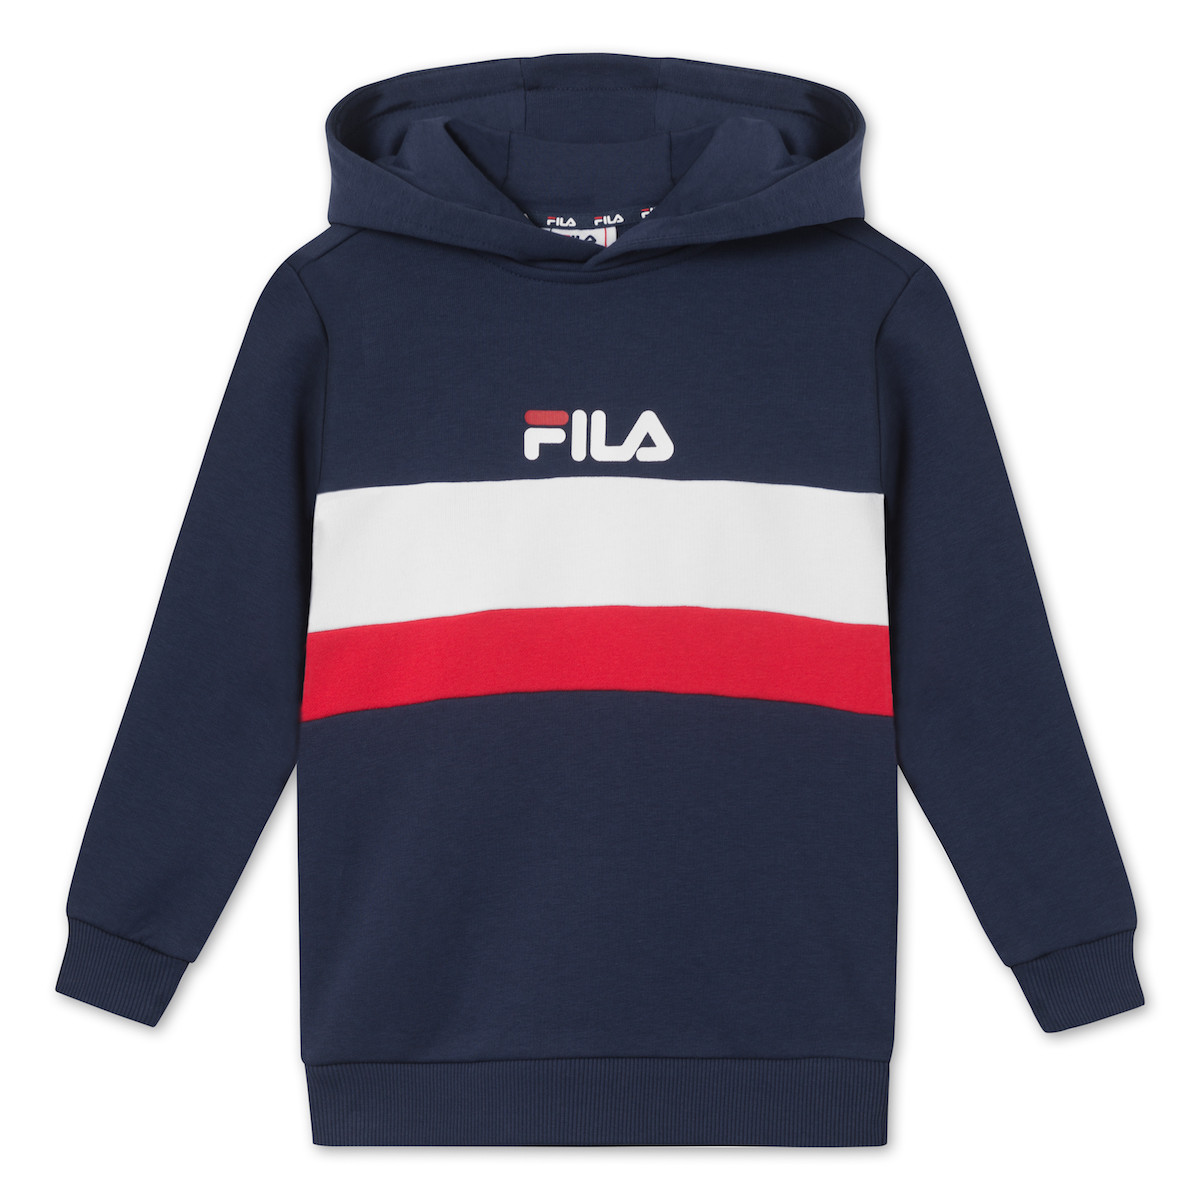 Billede af FILA ELLANAH HOODY SWEAT 687263 (Iris True/Red bright White, 170/176)